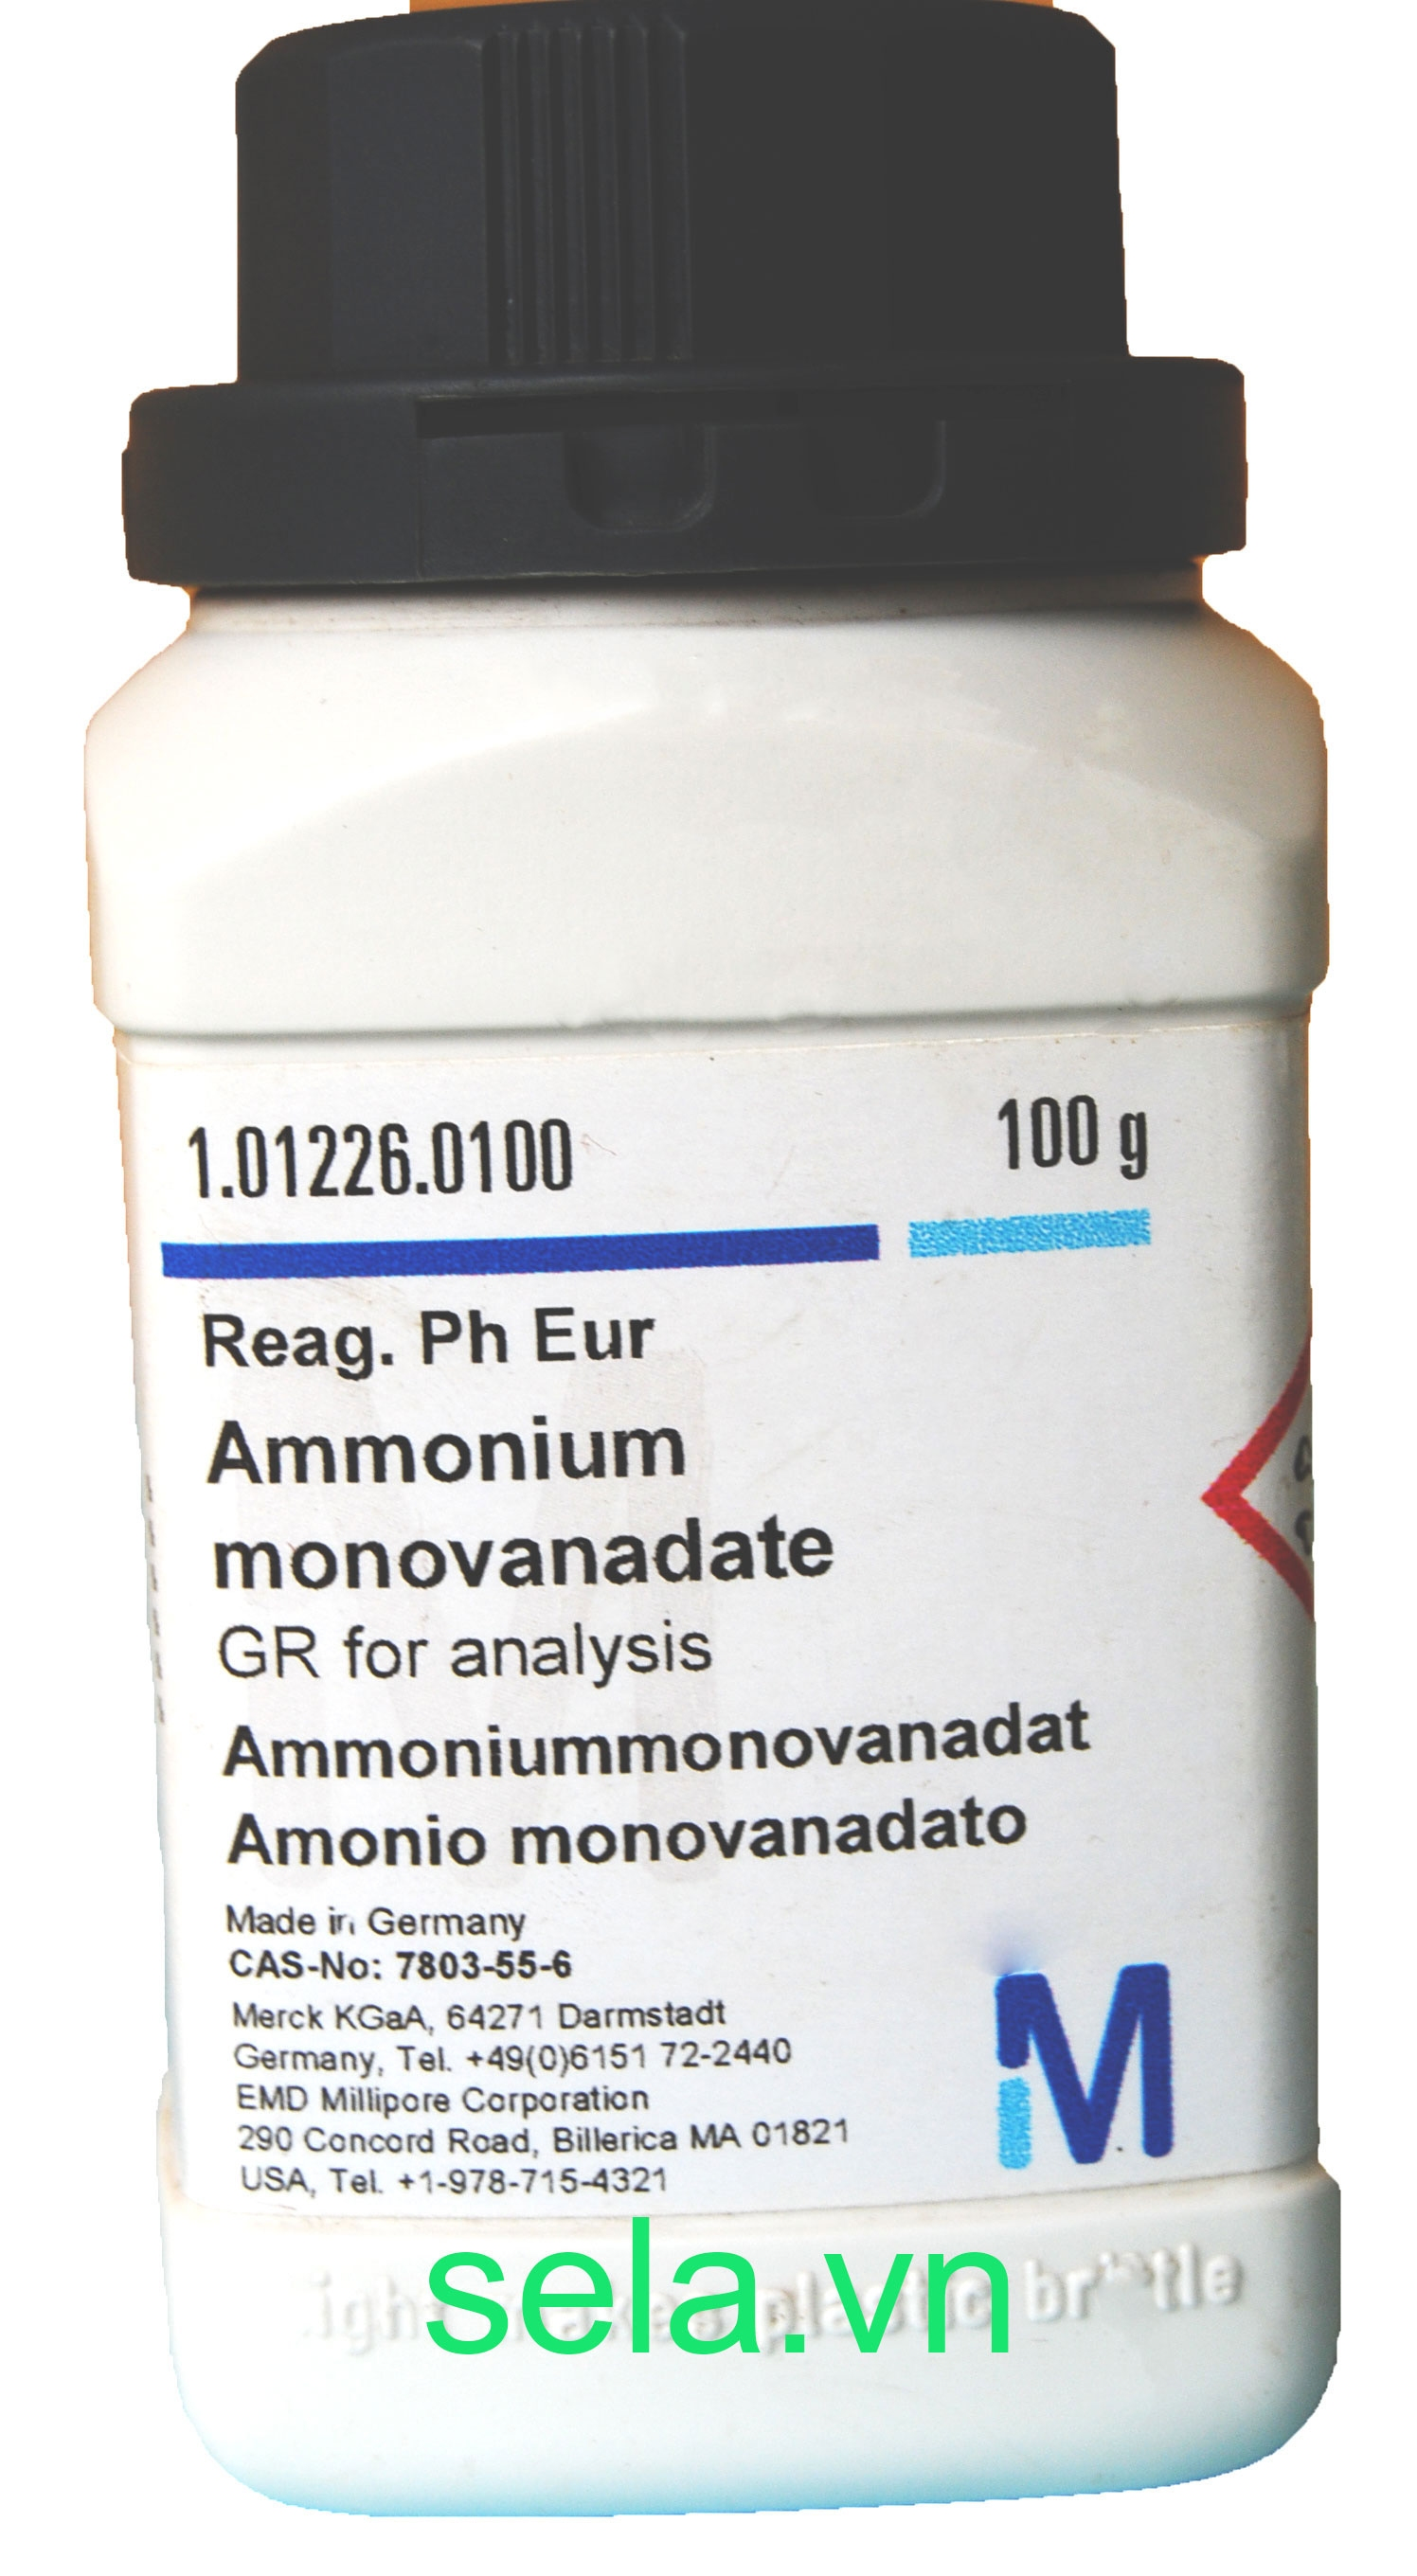 Ammonium monovanadate GR for analysis Reag. Ph Eur